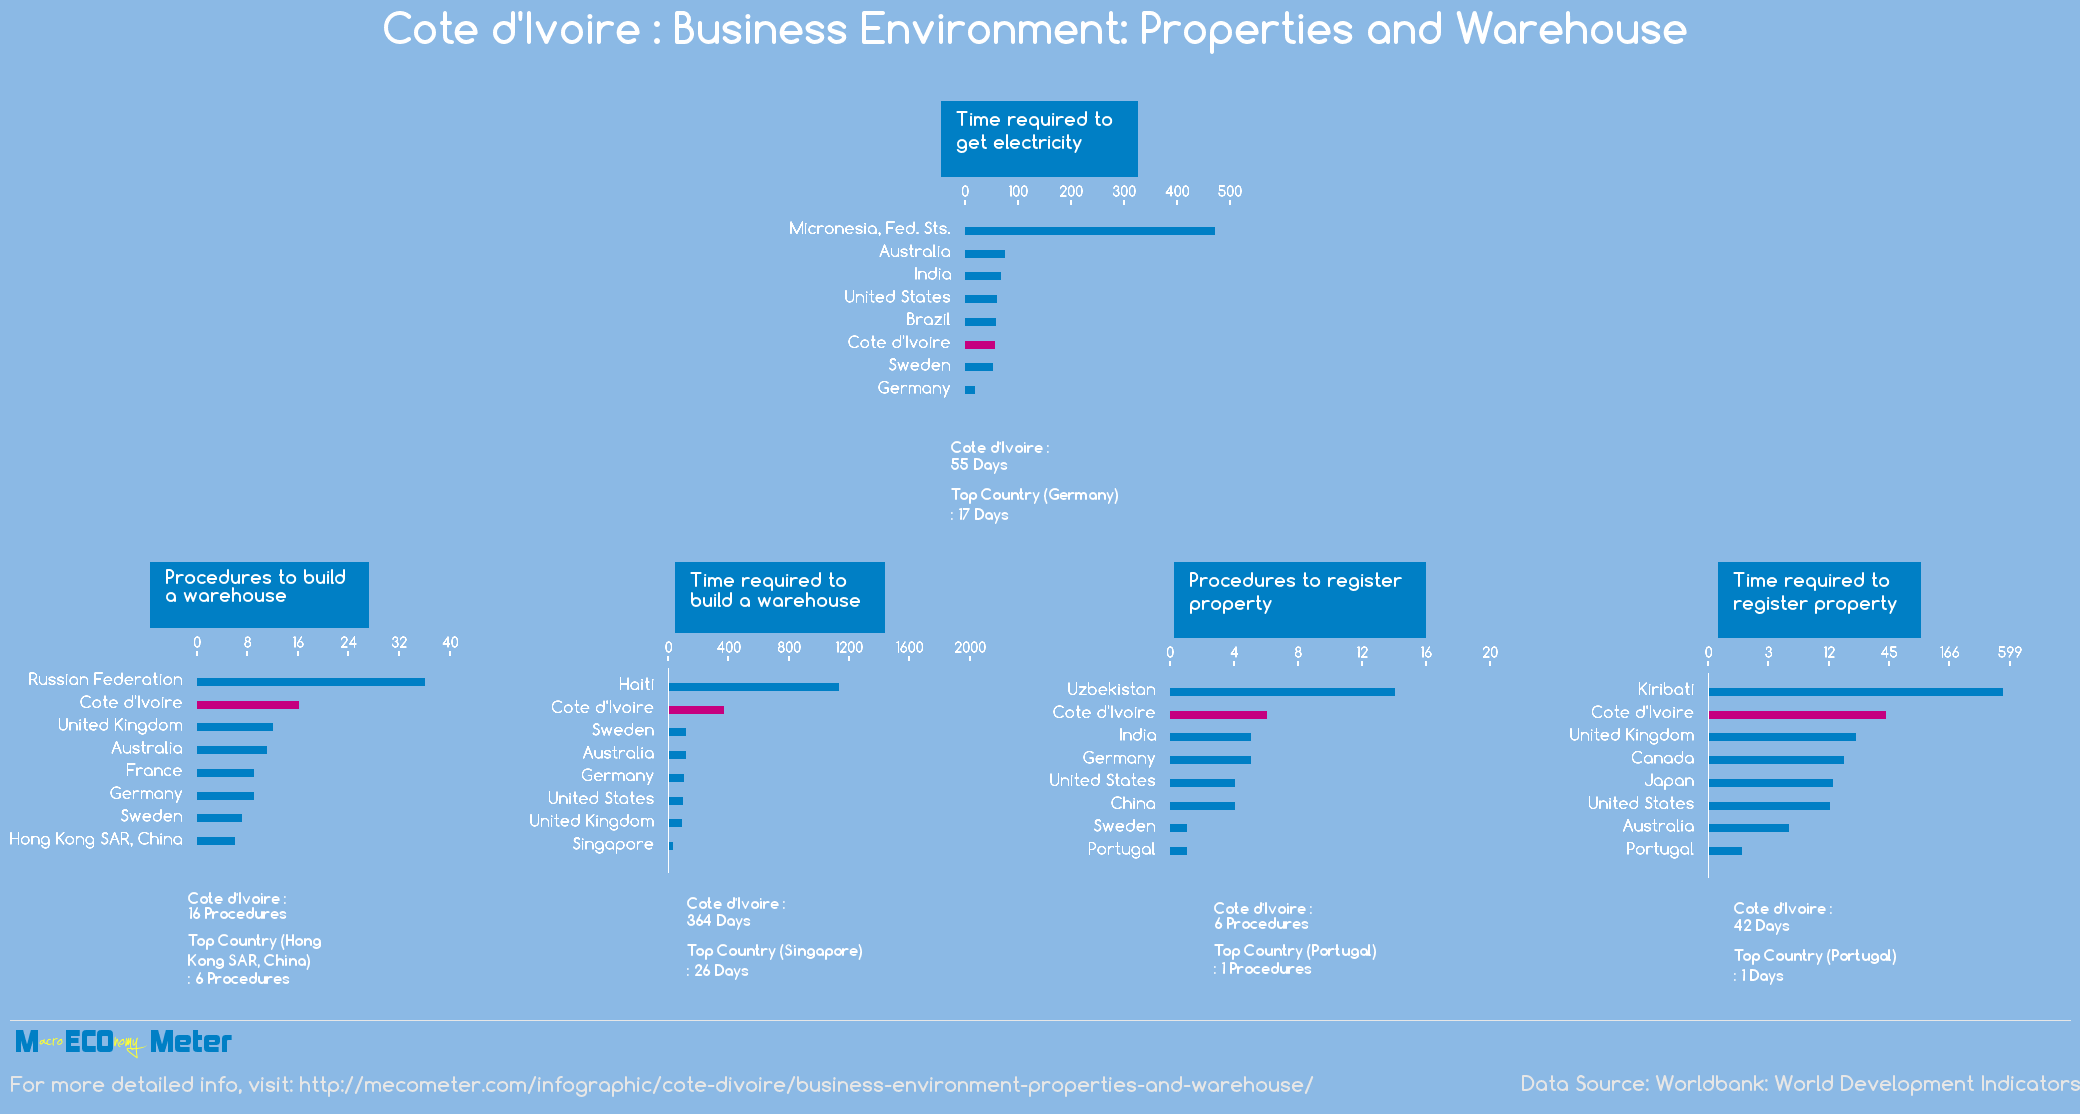 Cote d'Ivoire : Business Environment: Properties and Warehouse